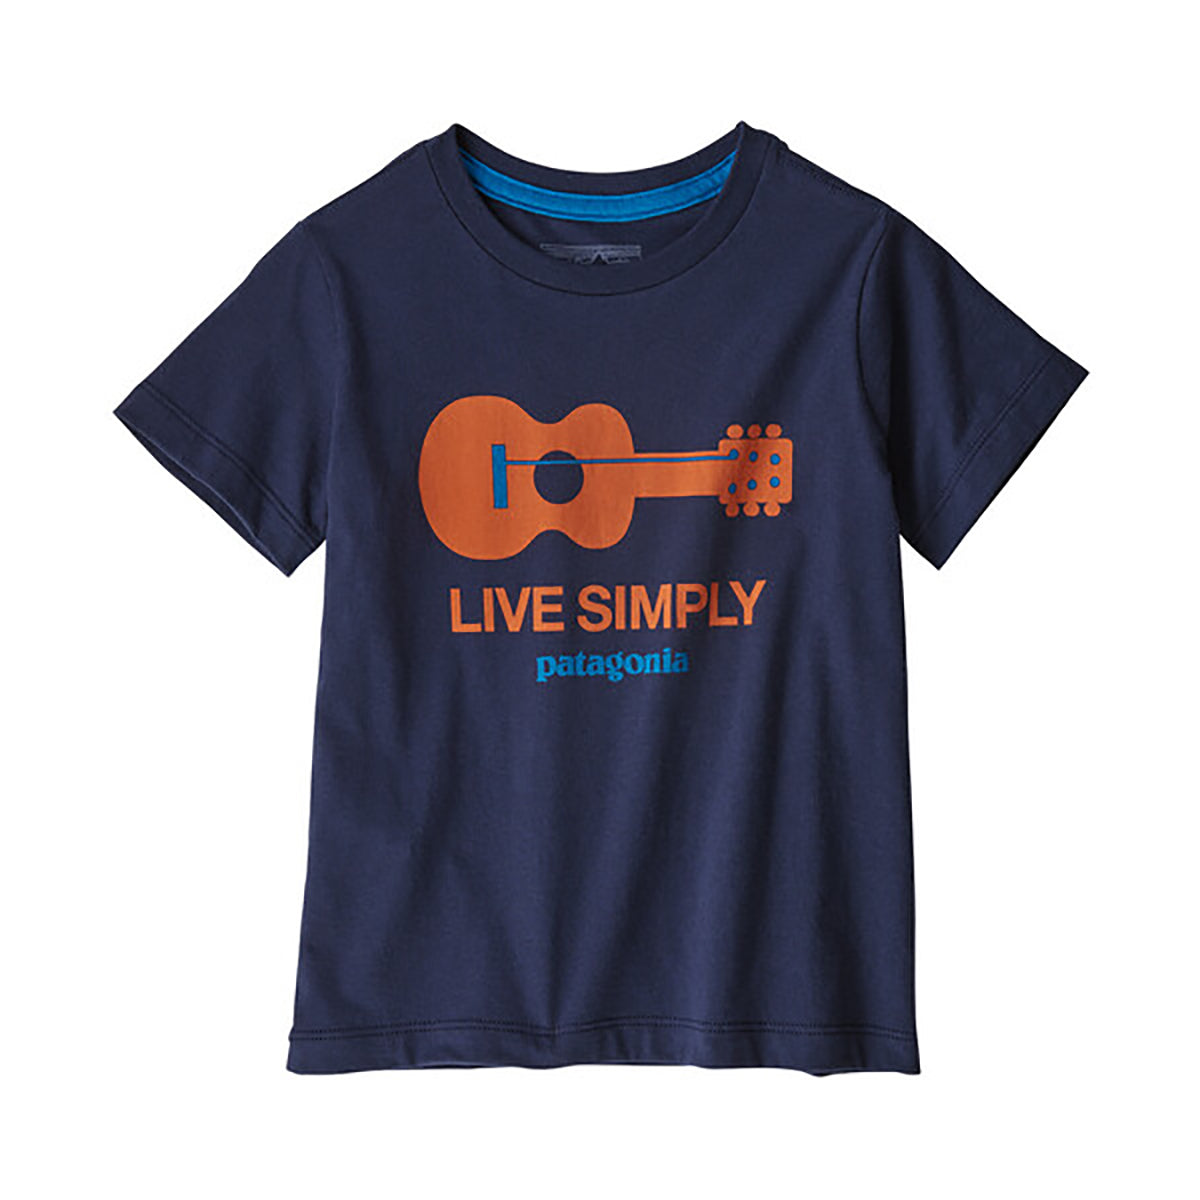 Patagonia baby live simply guitar tee, new navy